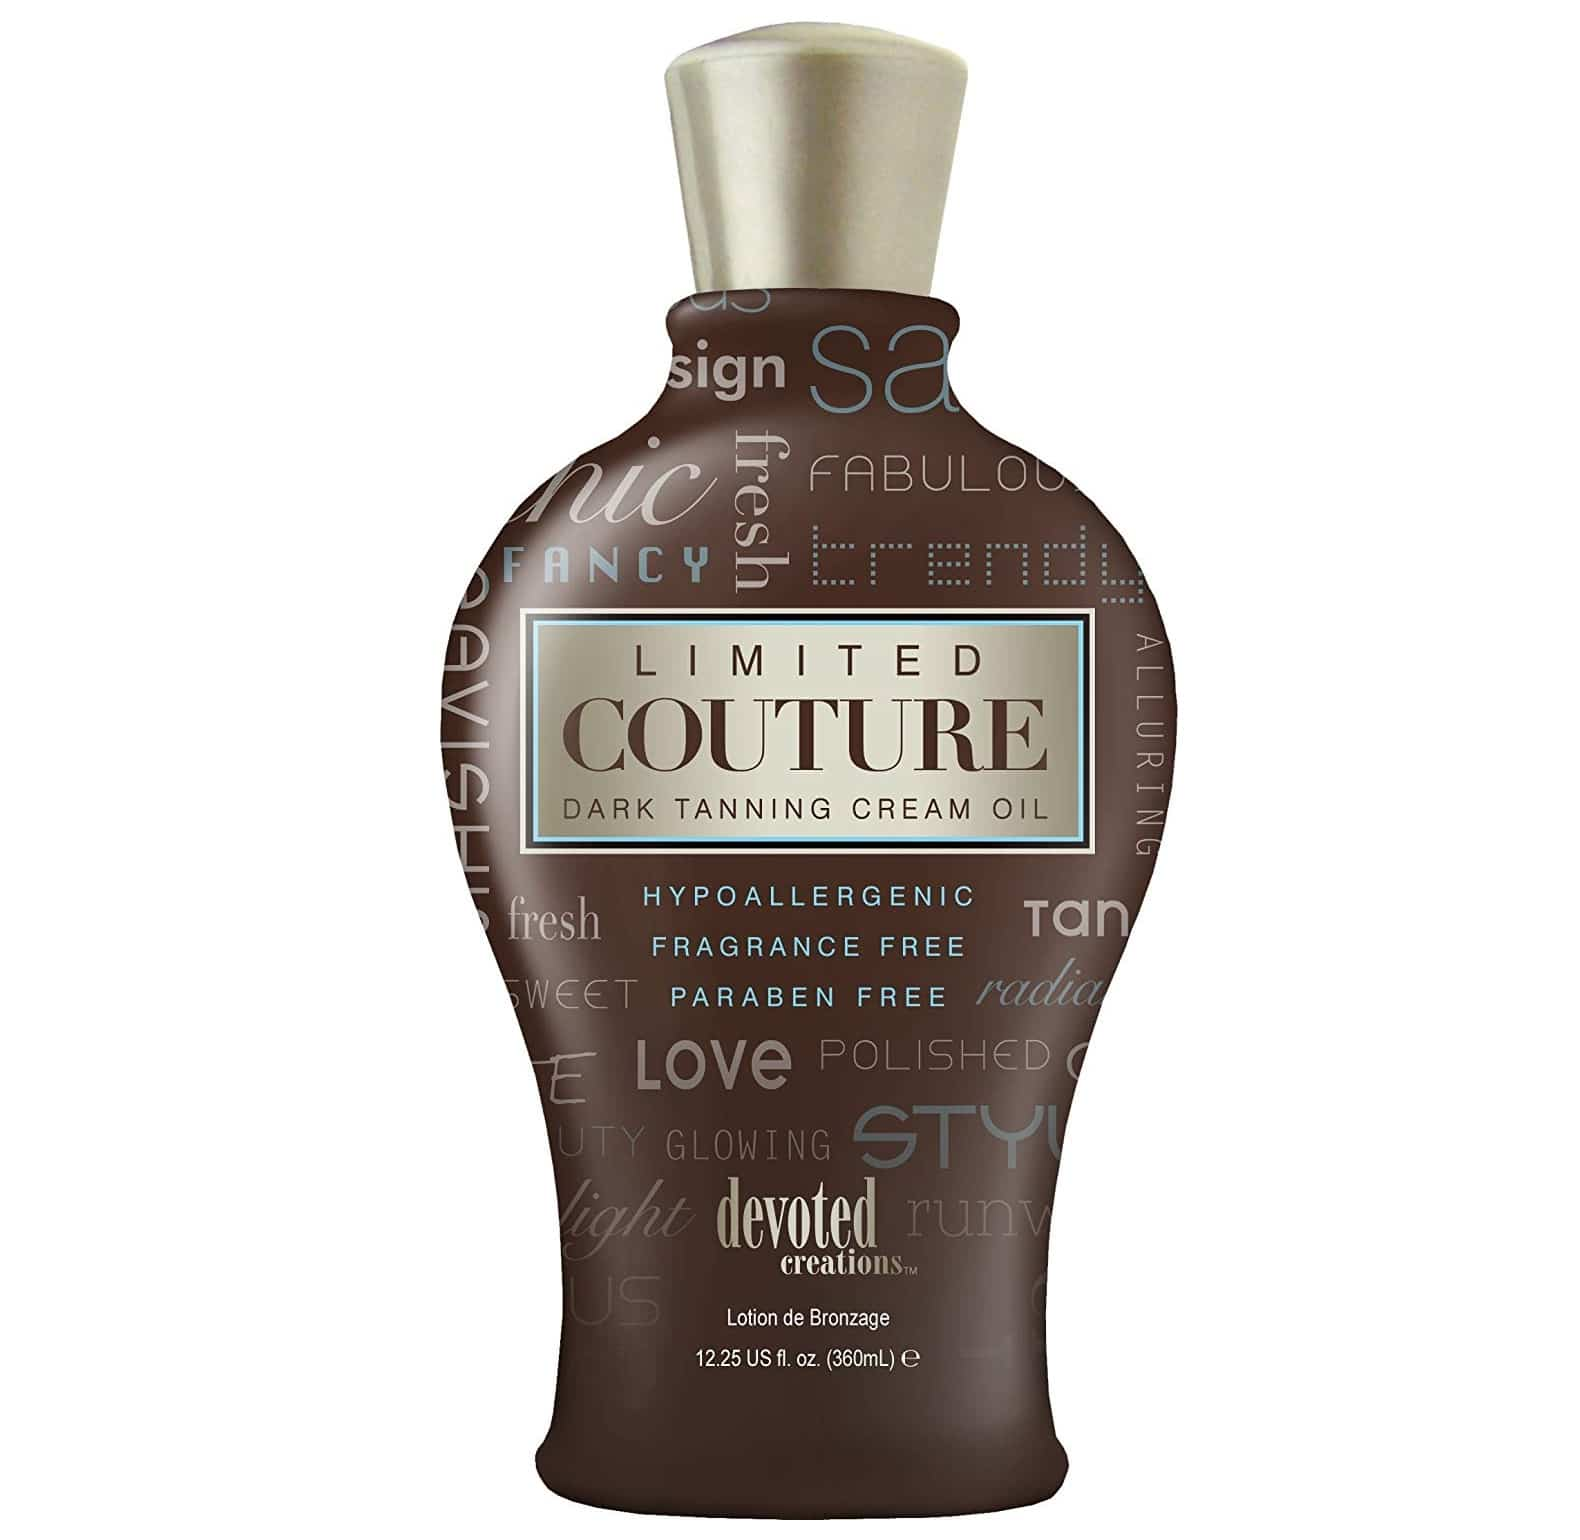 12.Devoted Creations Limited Couture Hypoallergenic Paraben Free Dark Tanning Creme Oil 12.25 oz.